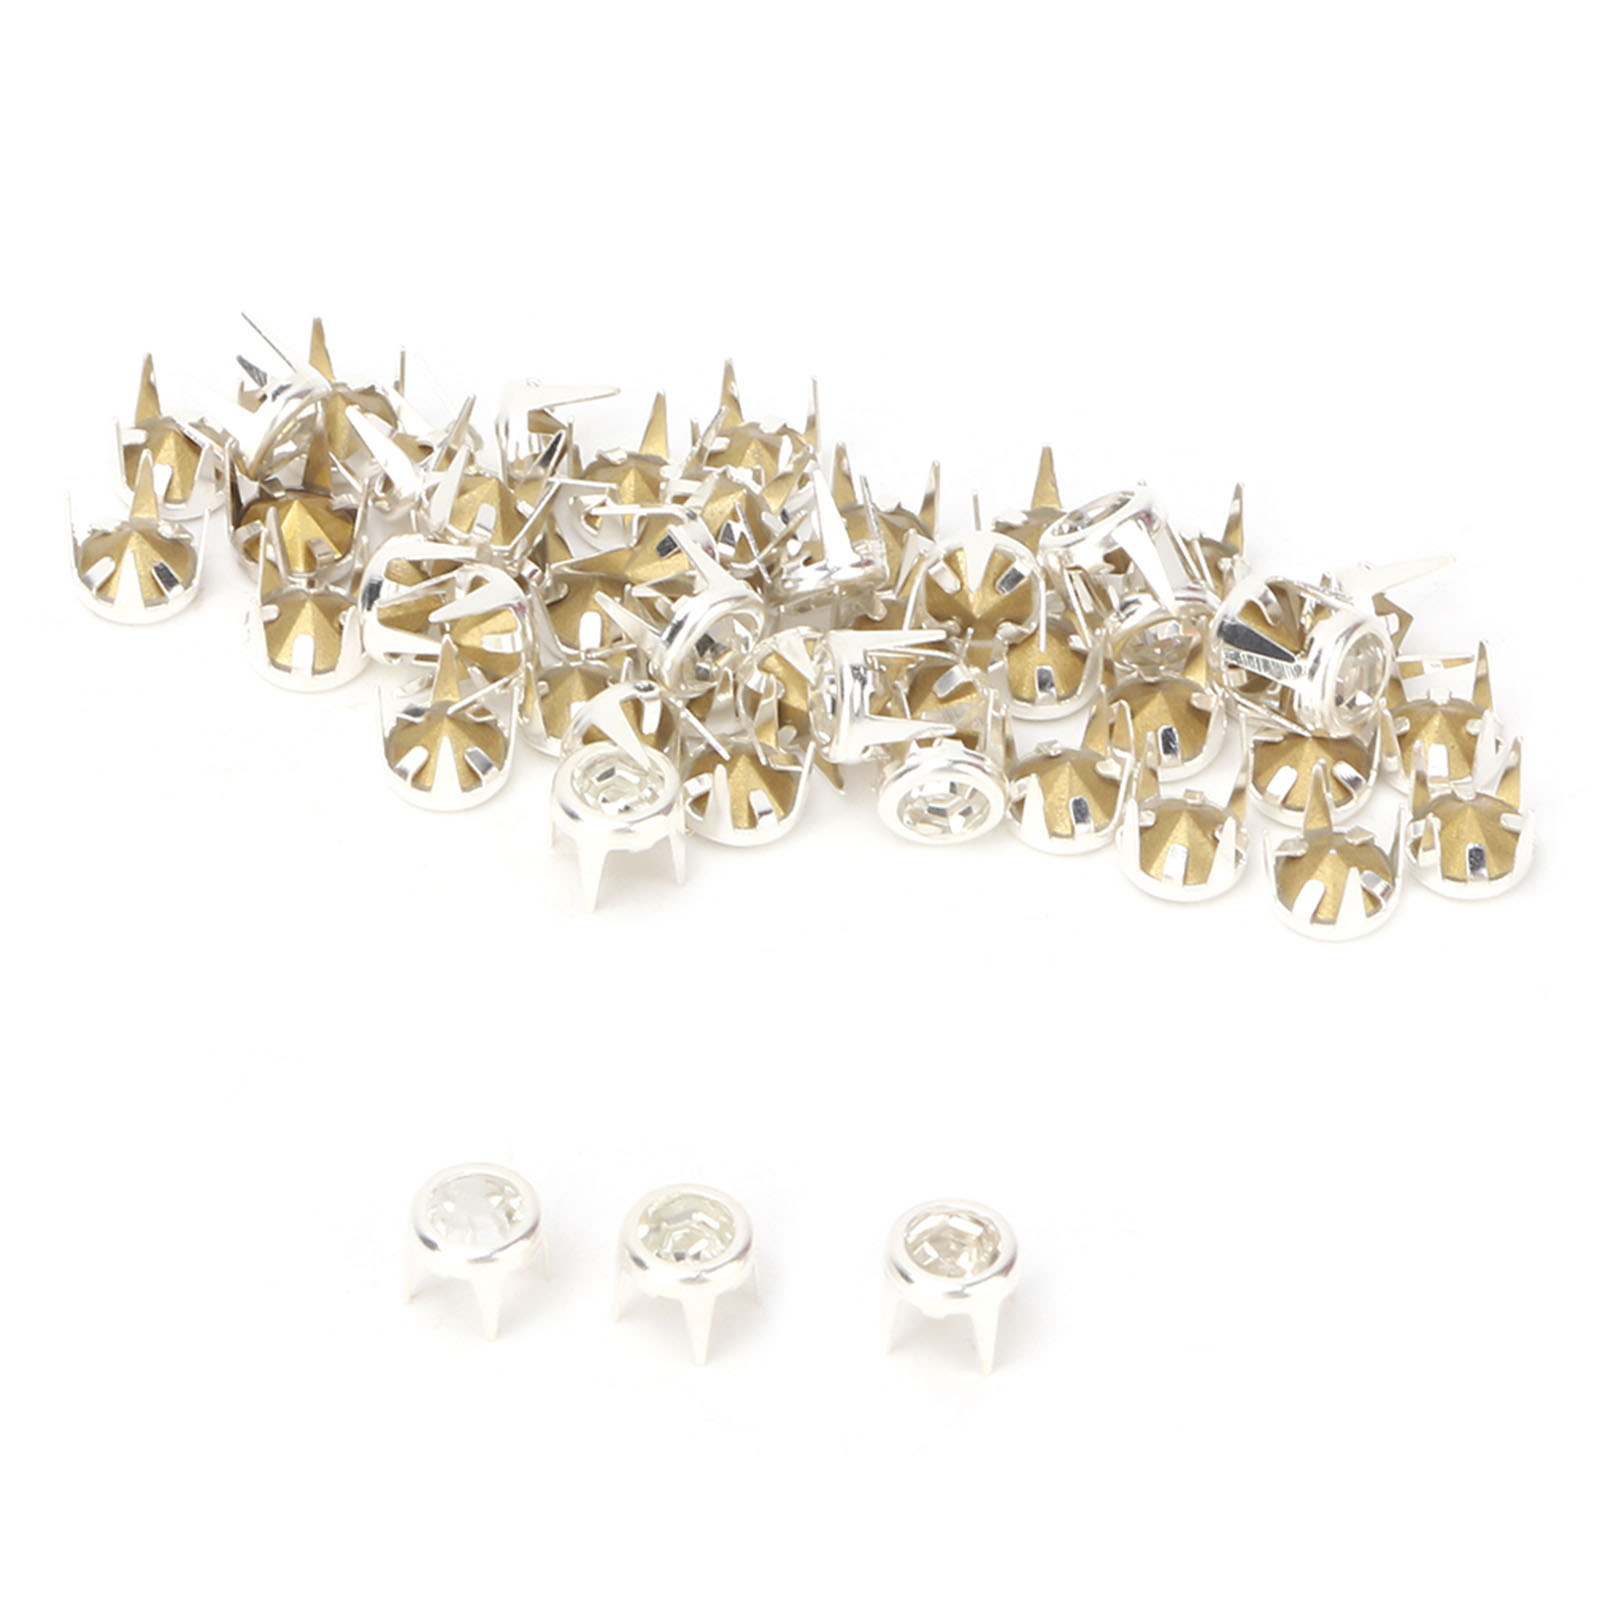 6-7-8-10mm-Rhinestone-Diamond-Crystal-Rivets-Studs-Leather-For-Bags-Shoe-Decor miniature 47